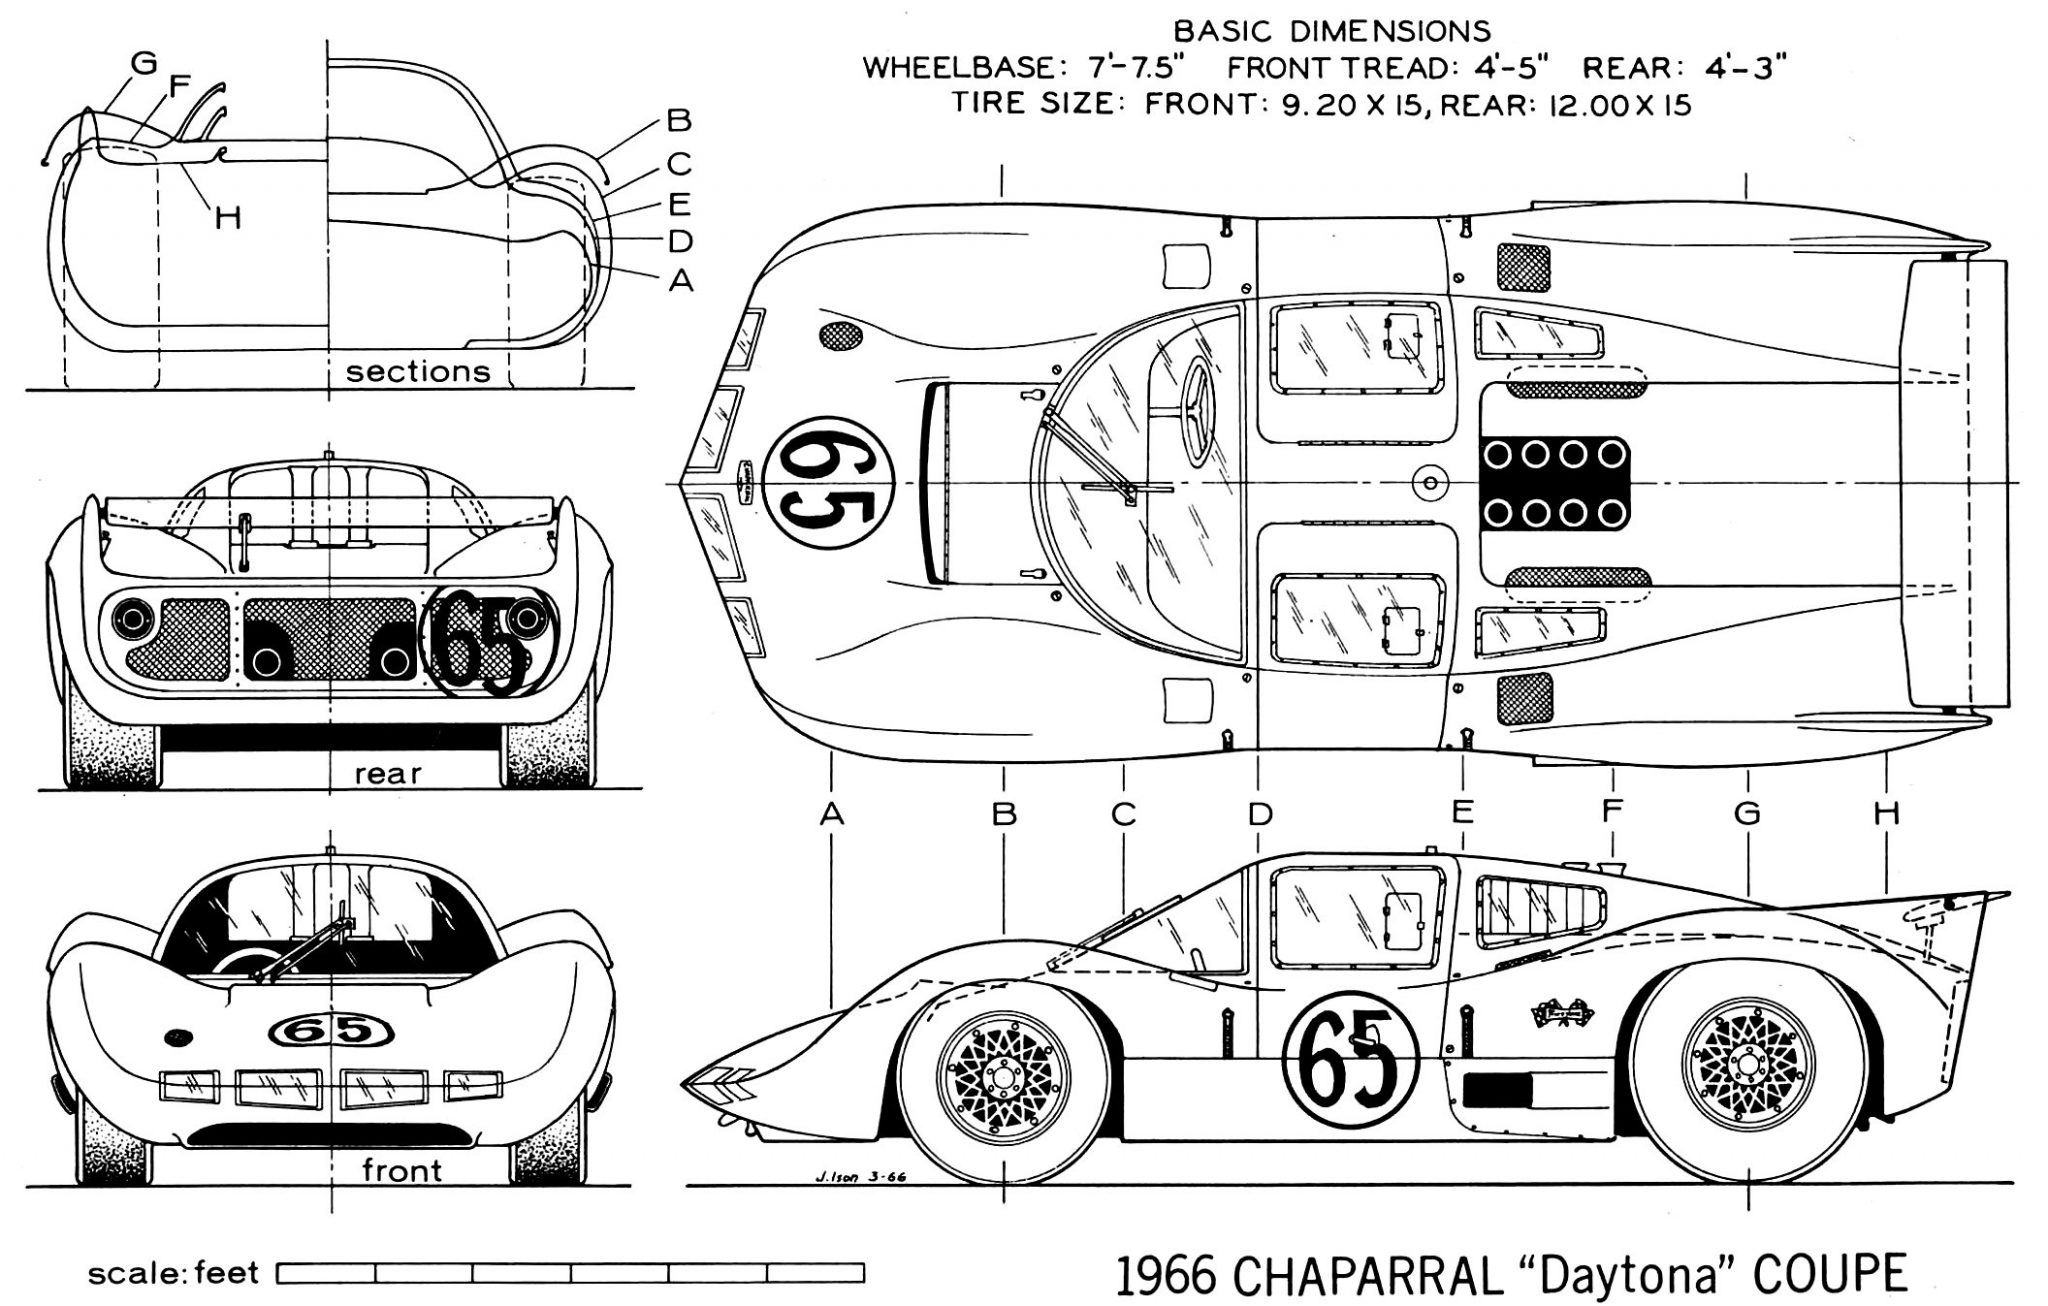 Chaparral 2D | Planos coches | Pinterest | Cars and Planes